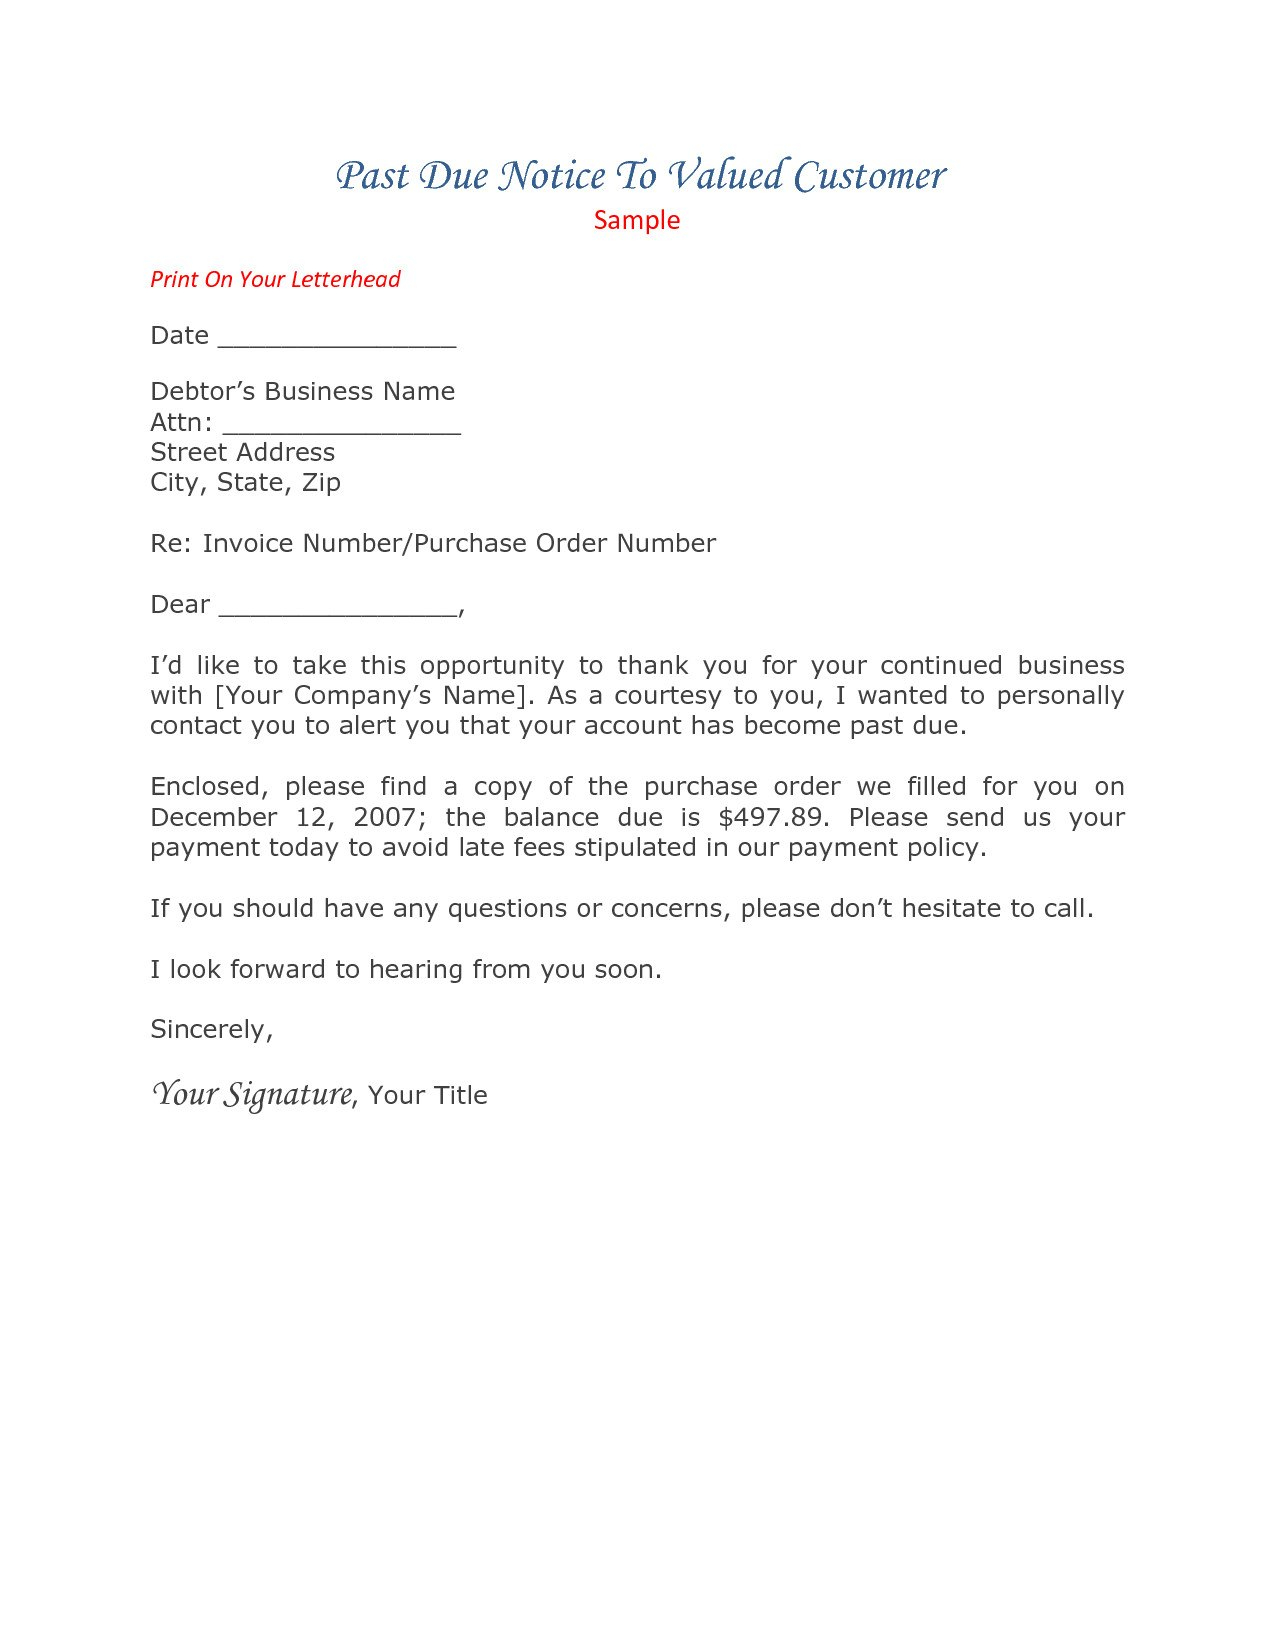 Past Due Invoice Letter Template Collection  Letter Cover Templates Intended For Past Due Letter Template